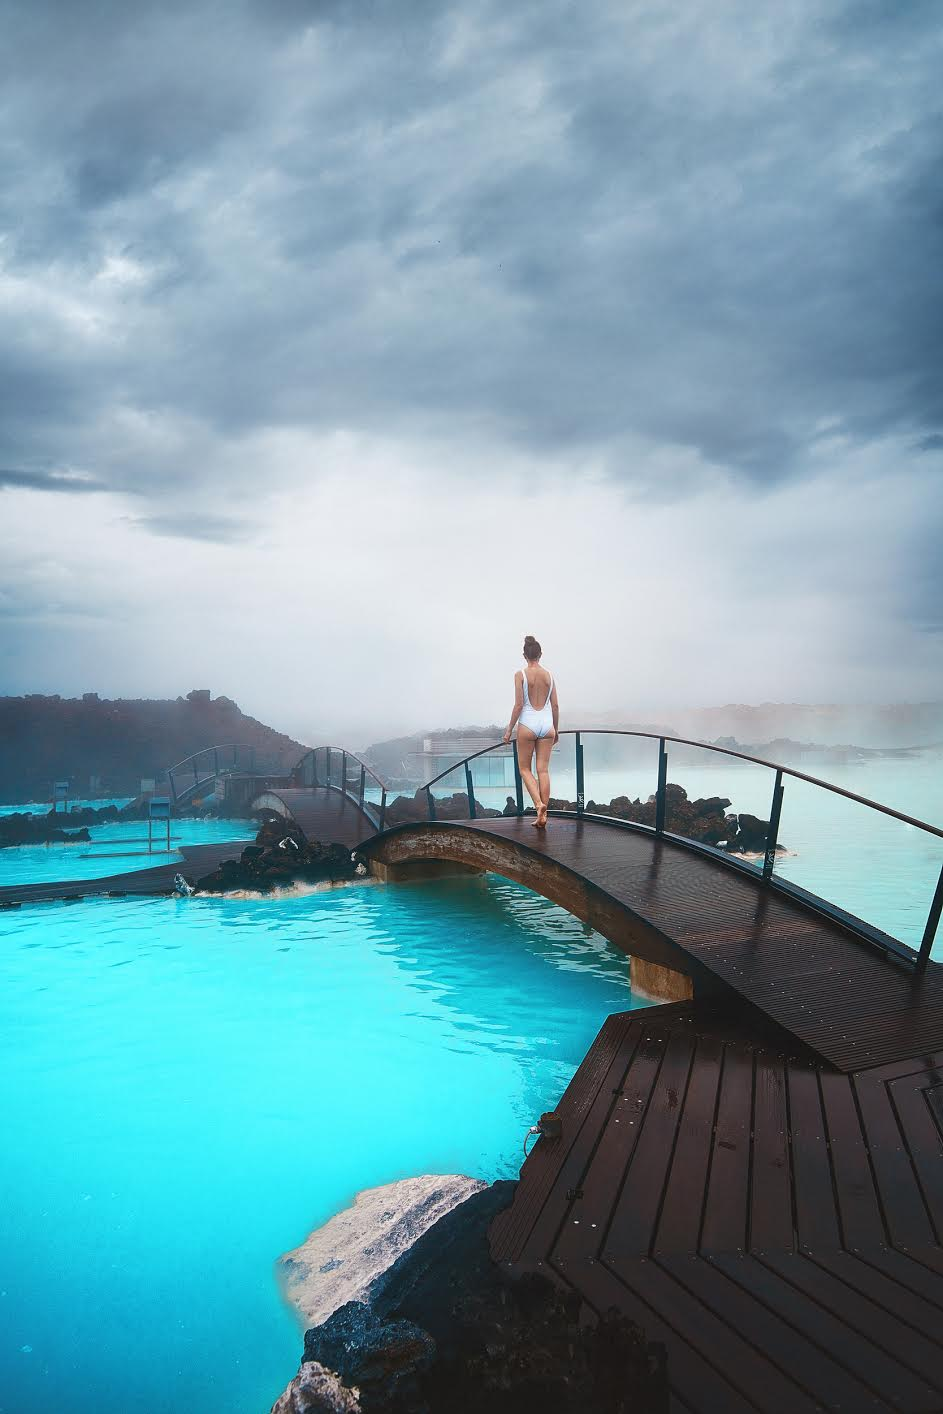 woman walking on a bridge across blue water at the blue lagoon. she is wearing a white bathing suit